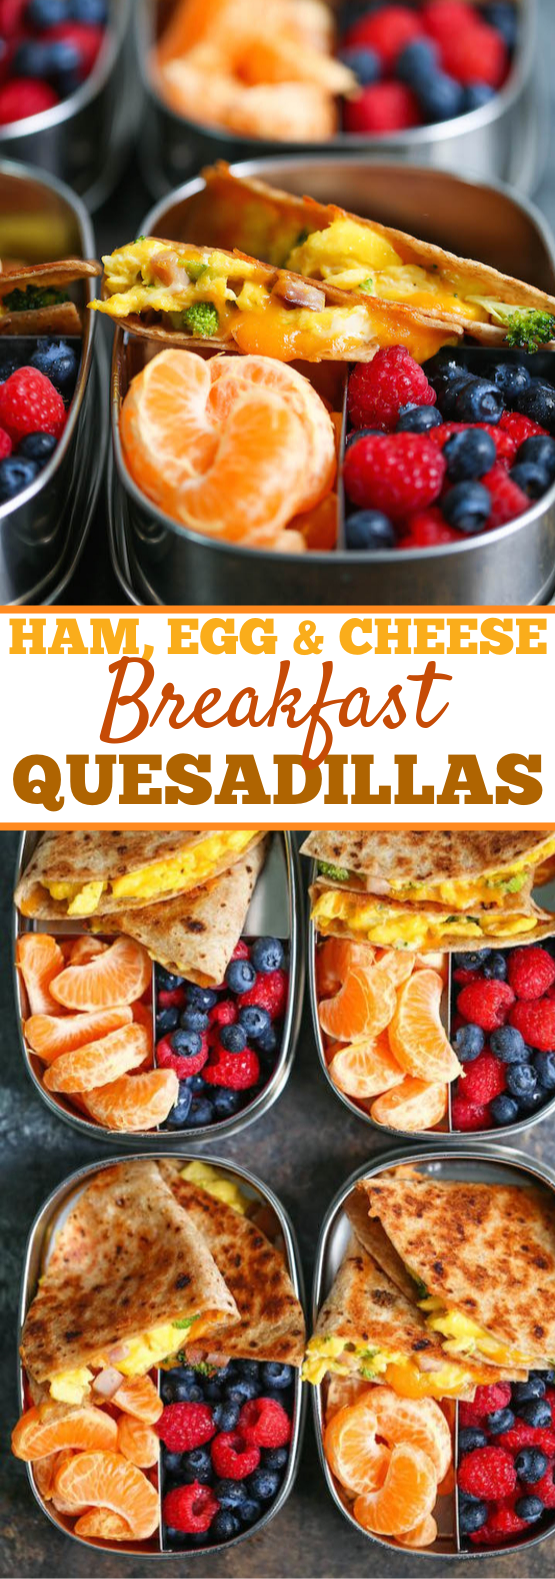 Ham, Egg and Cheese Breakfast Quesadillas #healthy #breakfast